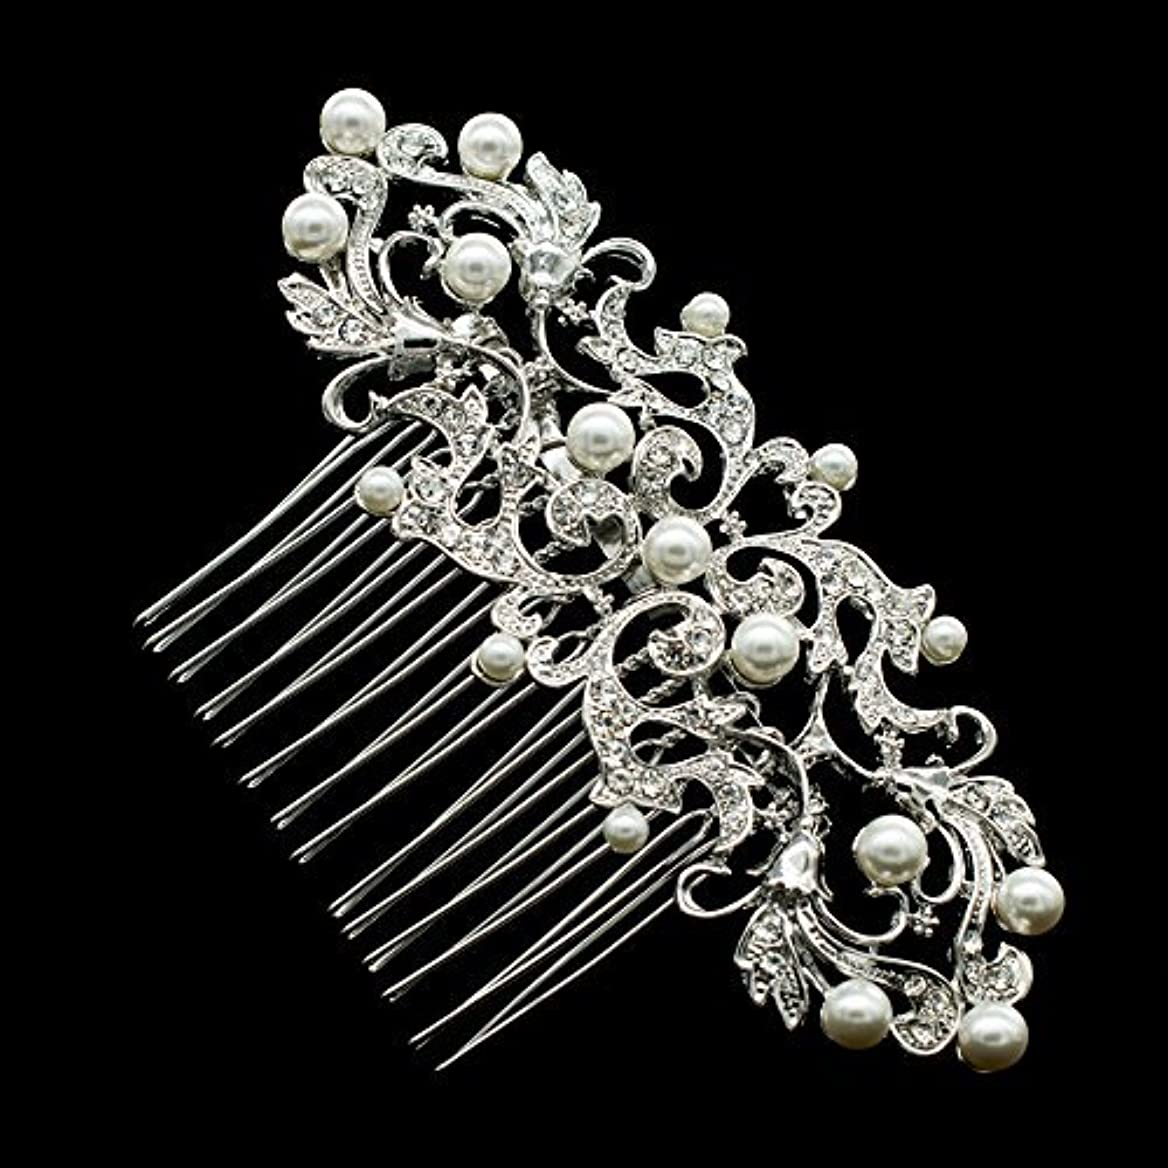 メッシュ現実にはシネウィSEP Rhinestone Crystal Wedding Bride Hair Comb Hairpins Jewelry Accessories 2221R [並行輸入品]